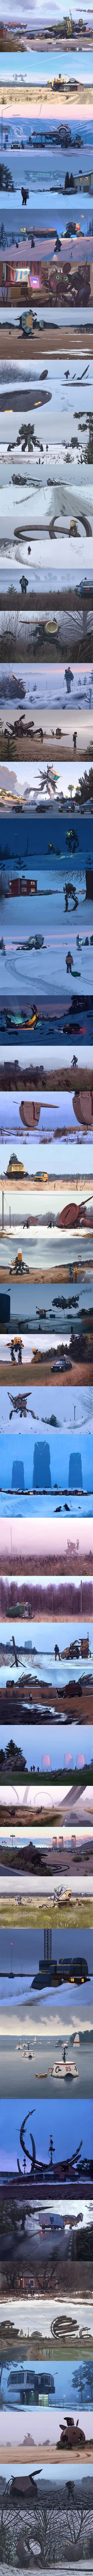 This dude Simon Stalenhag has an absolutely stunning series that crosses retro futurism with the organic landscapes of Sweden. It's surreal. It's beautiful.